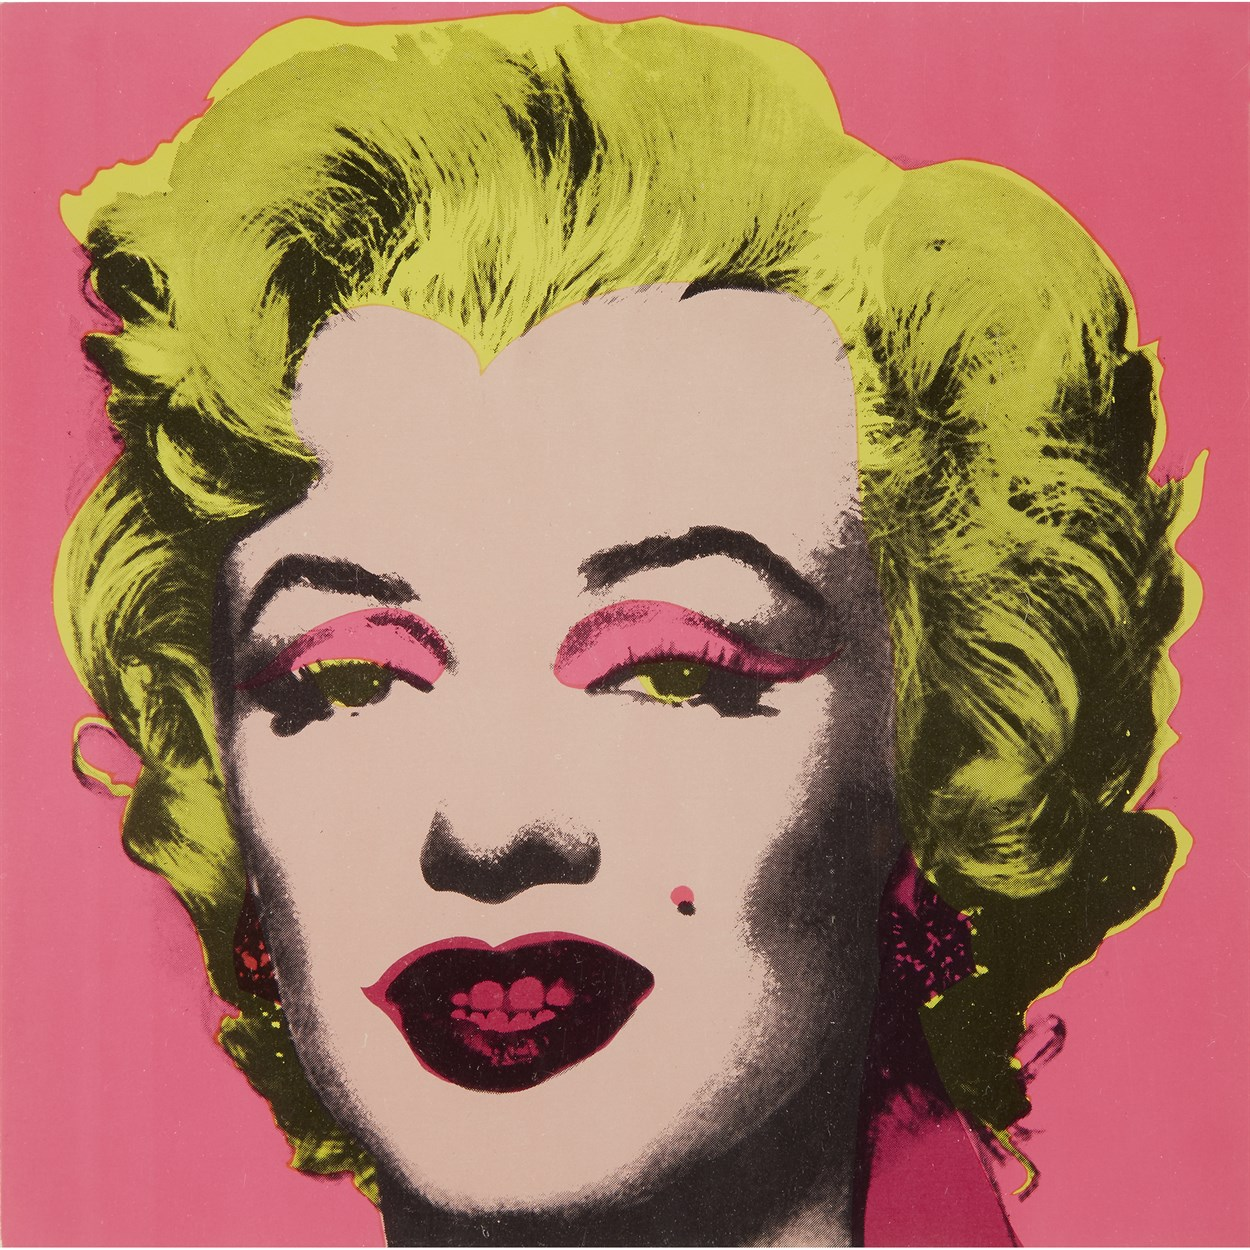 Lot 92 - After Andy Warhol (American, 1928-1987)